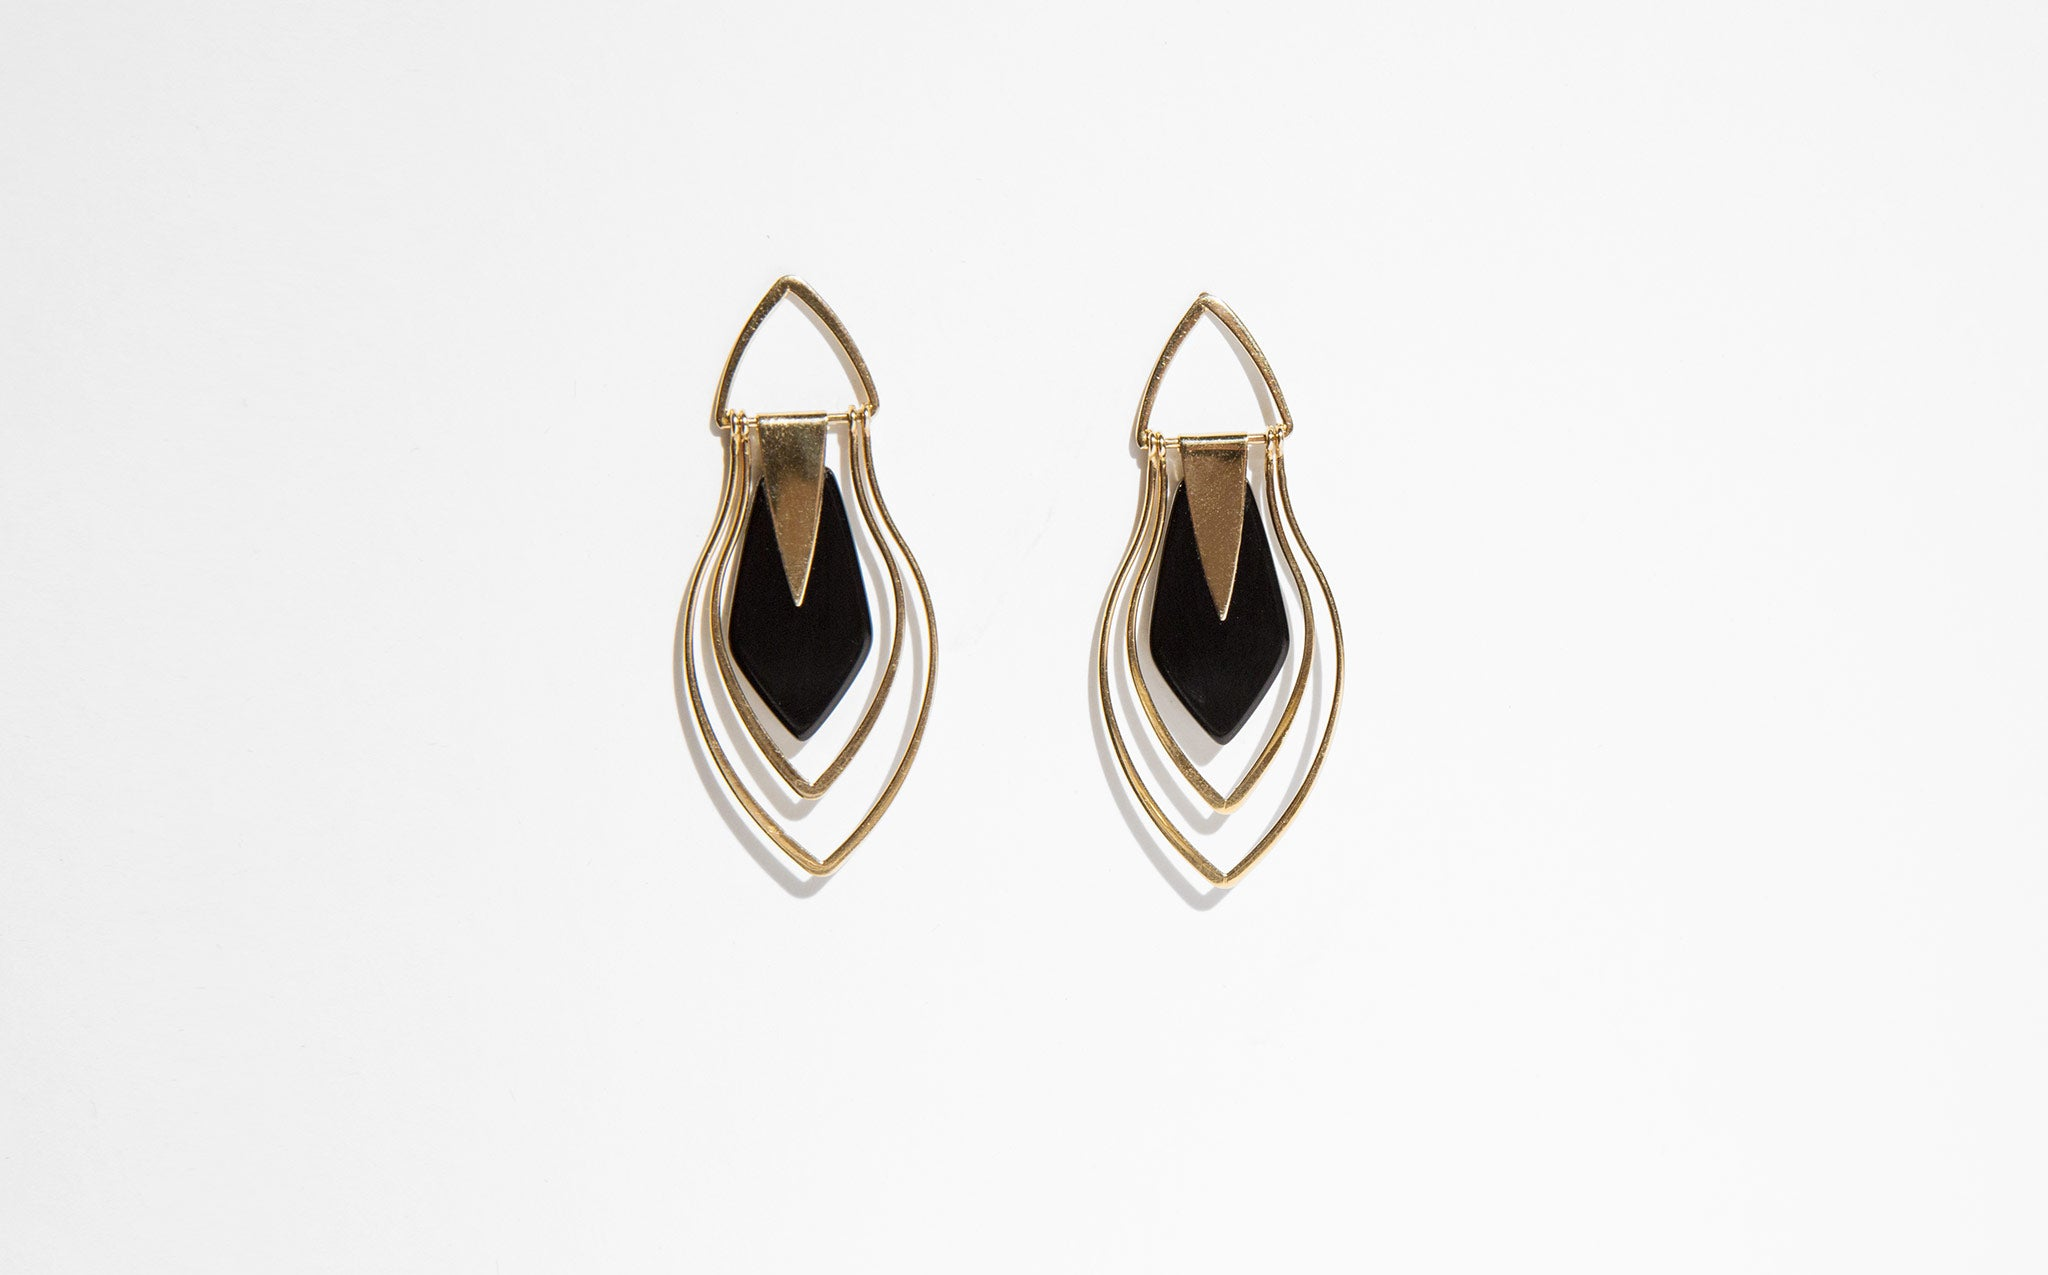 Onyx and 14K Gold Deco Earrings